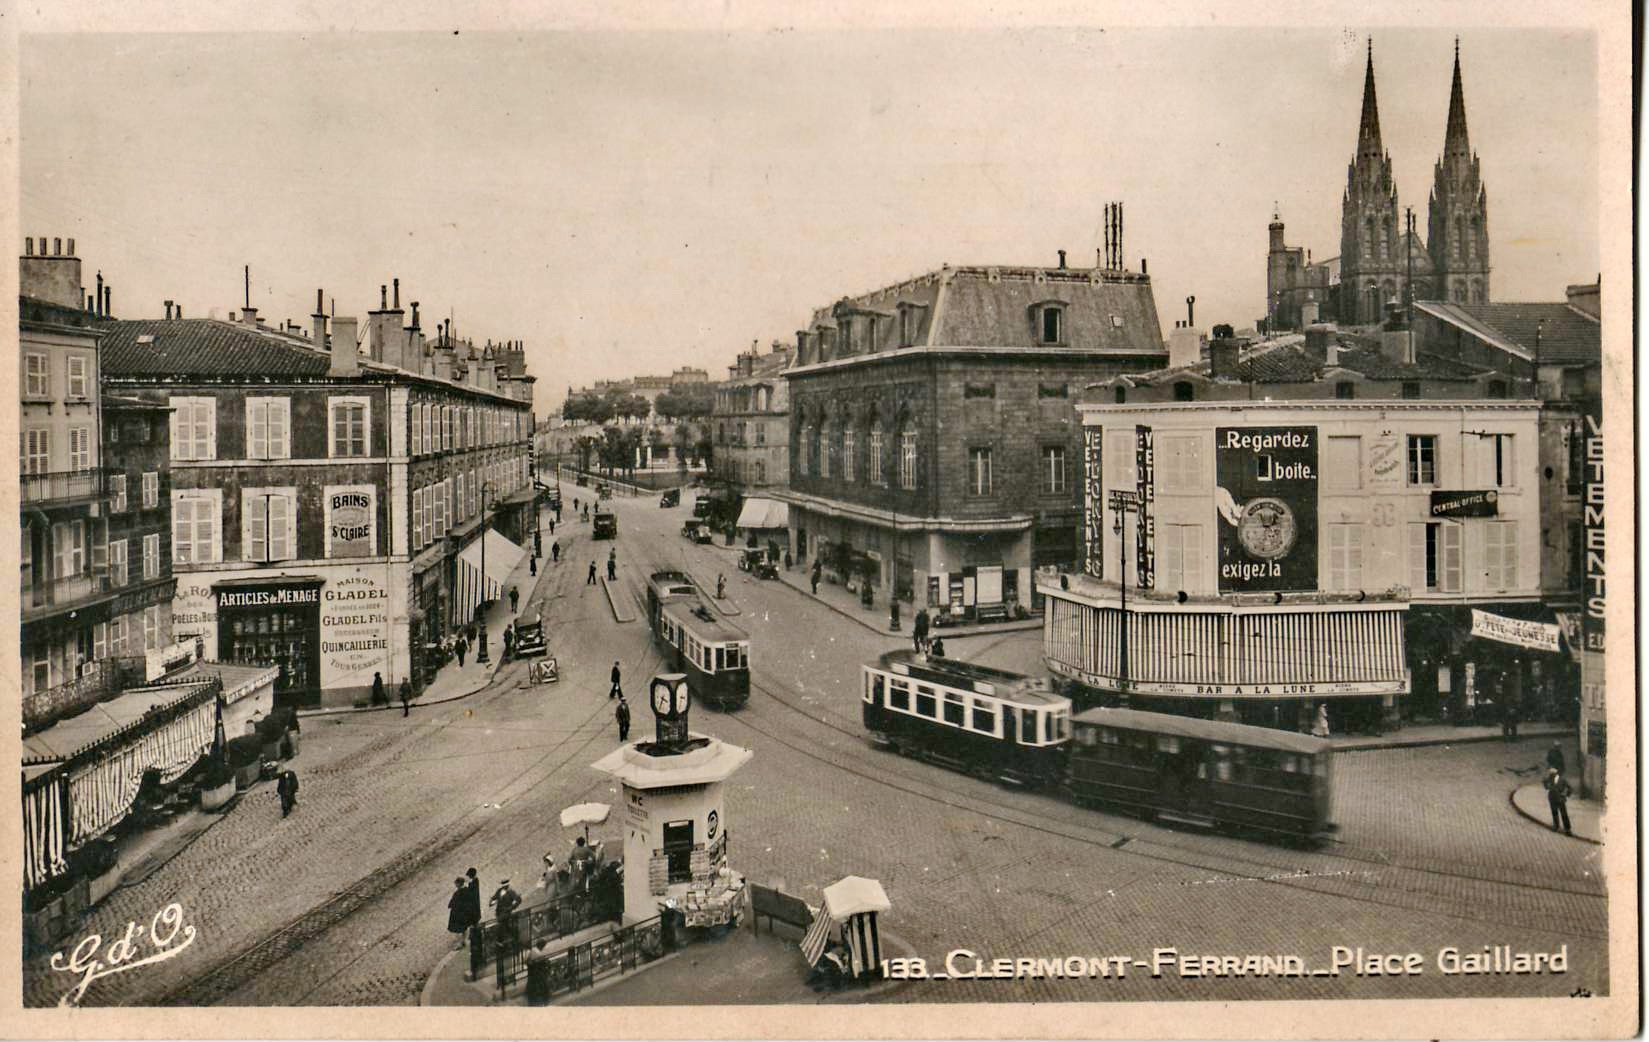 ancien tramway de clermont ferrand wikip dia. Black Bedroom Furniture Sets. Home Design Ideas